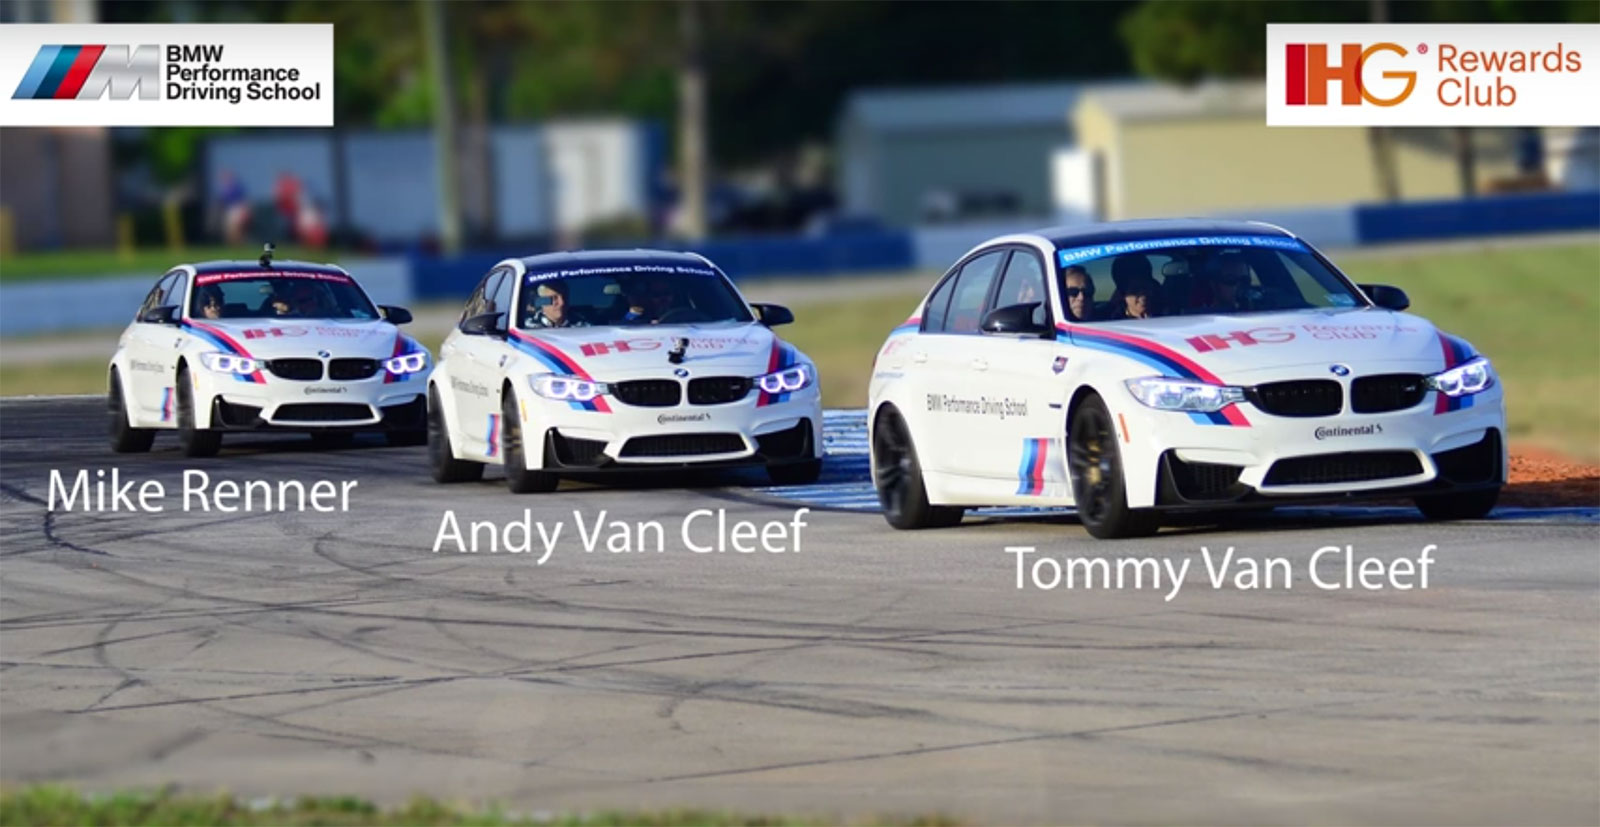 BMW M3 Sebring hot laps